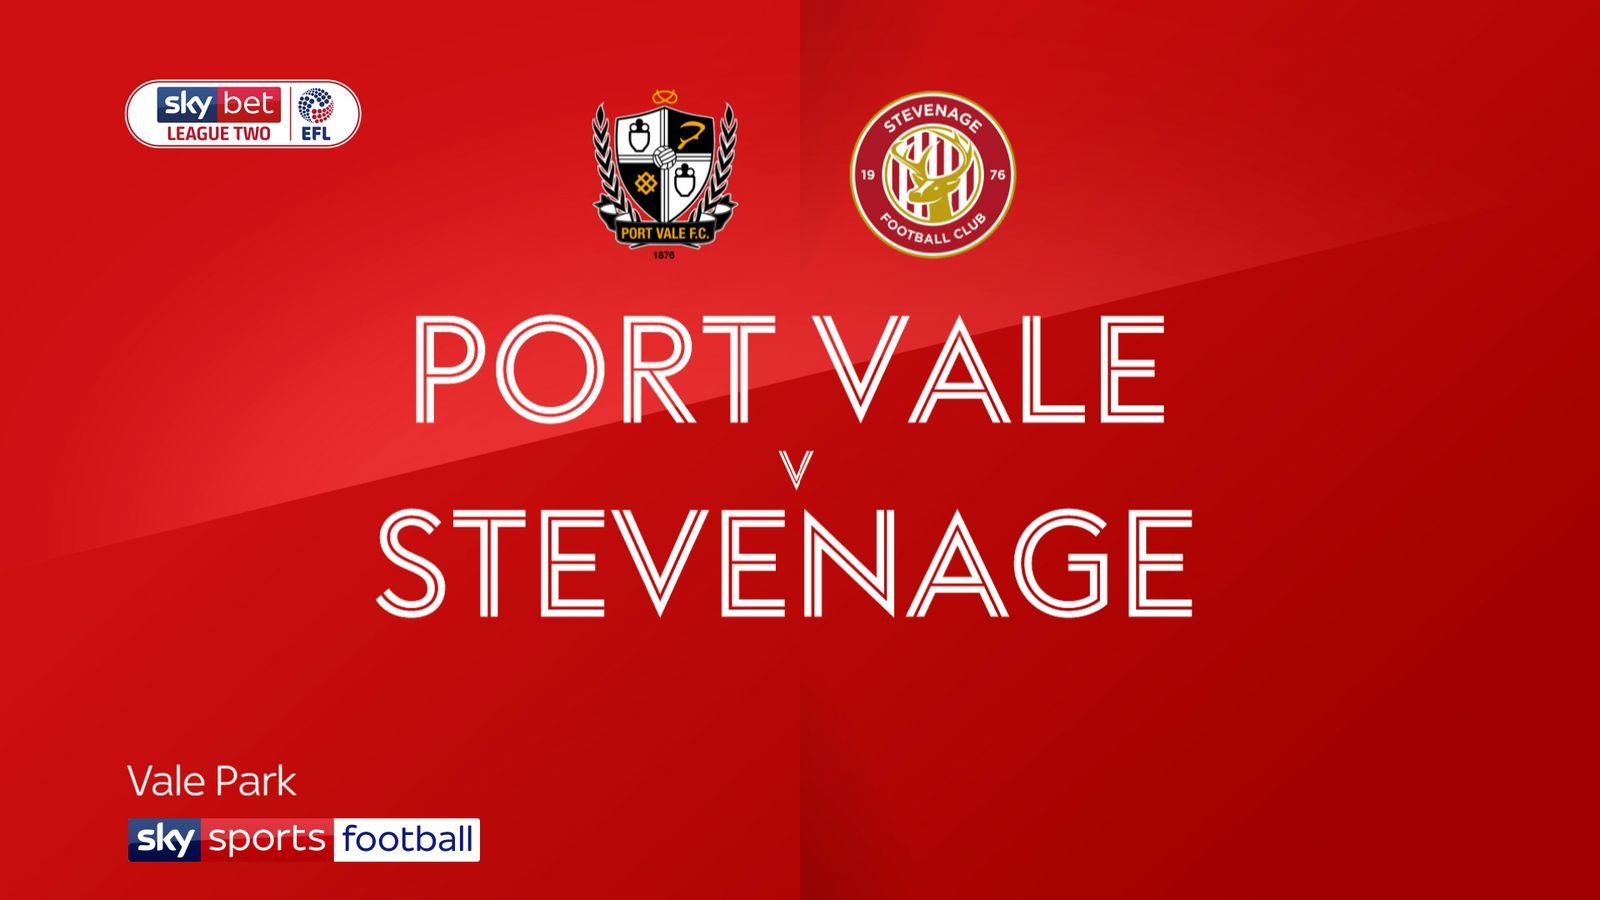 Port Vale 1-1 Stevenage: Spoils shared at Vale Park